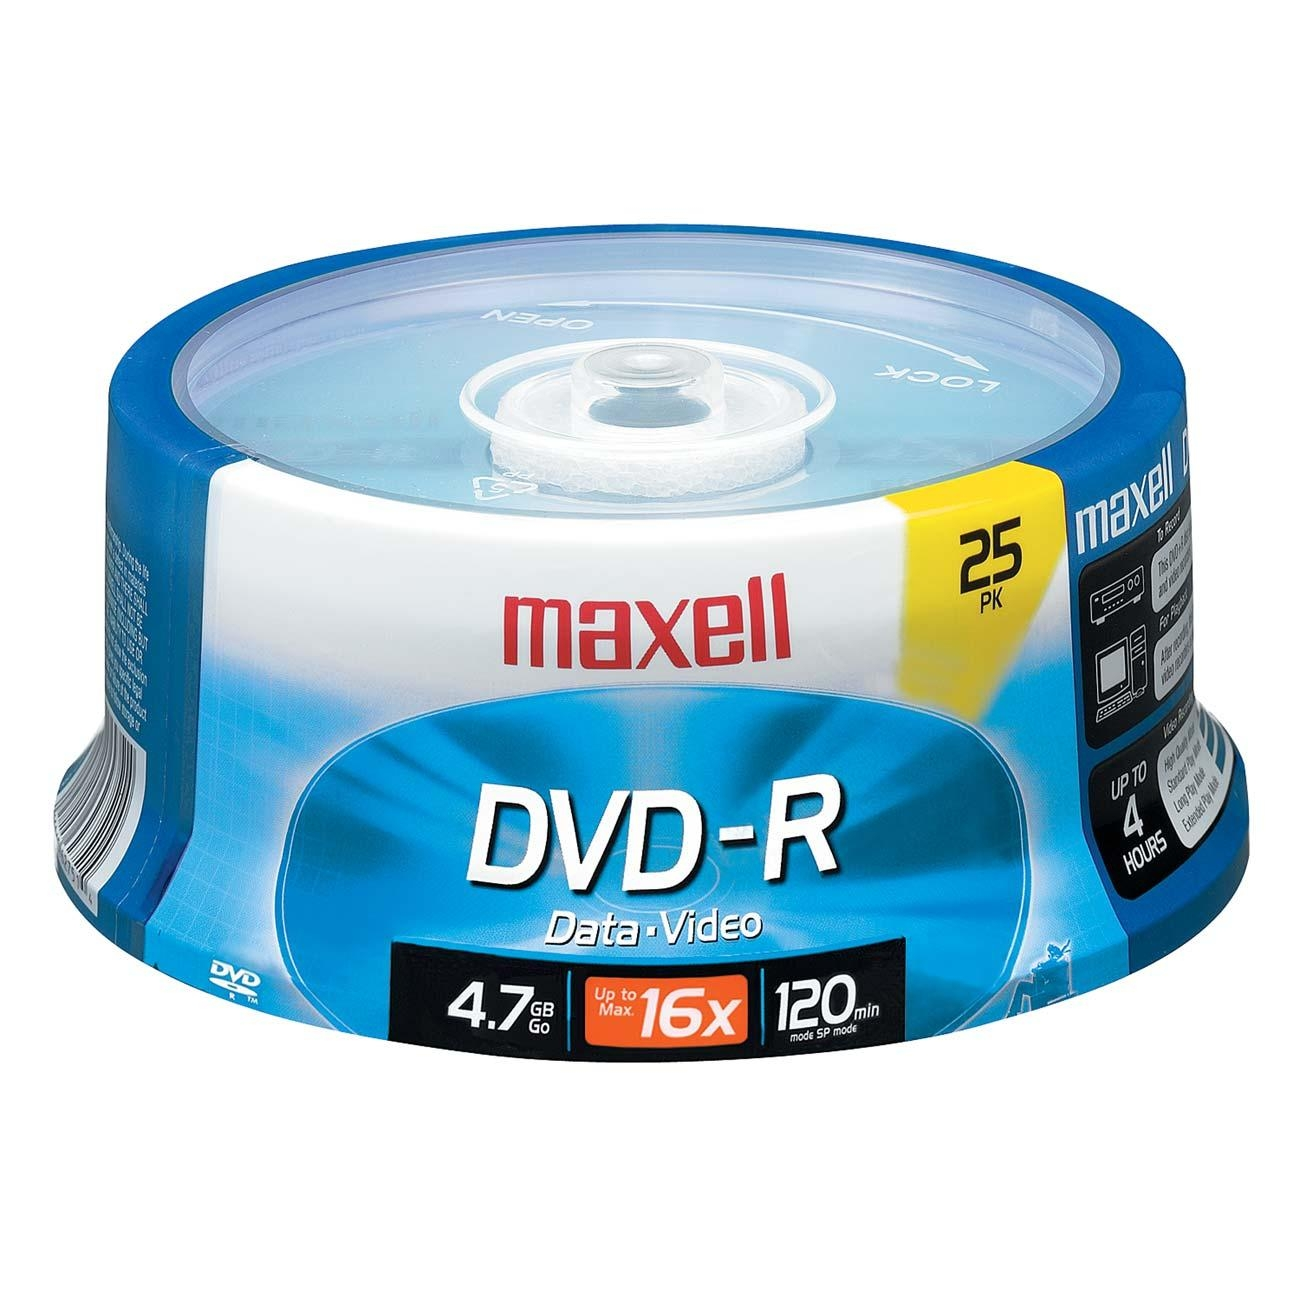 Maxell DVD Recordable Media - DVD-R - 16x - 4.70 GB - 25 Pack Spindle - 120mm - 2 Hour Maximum Recording Time